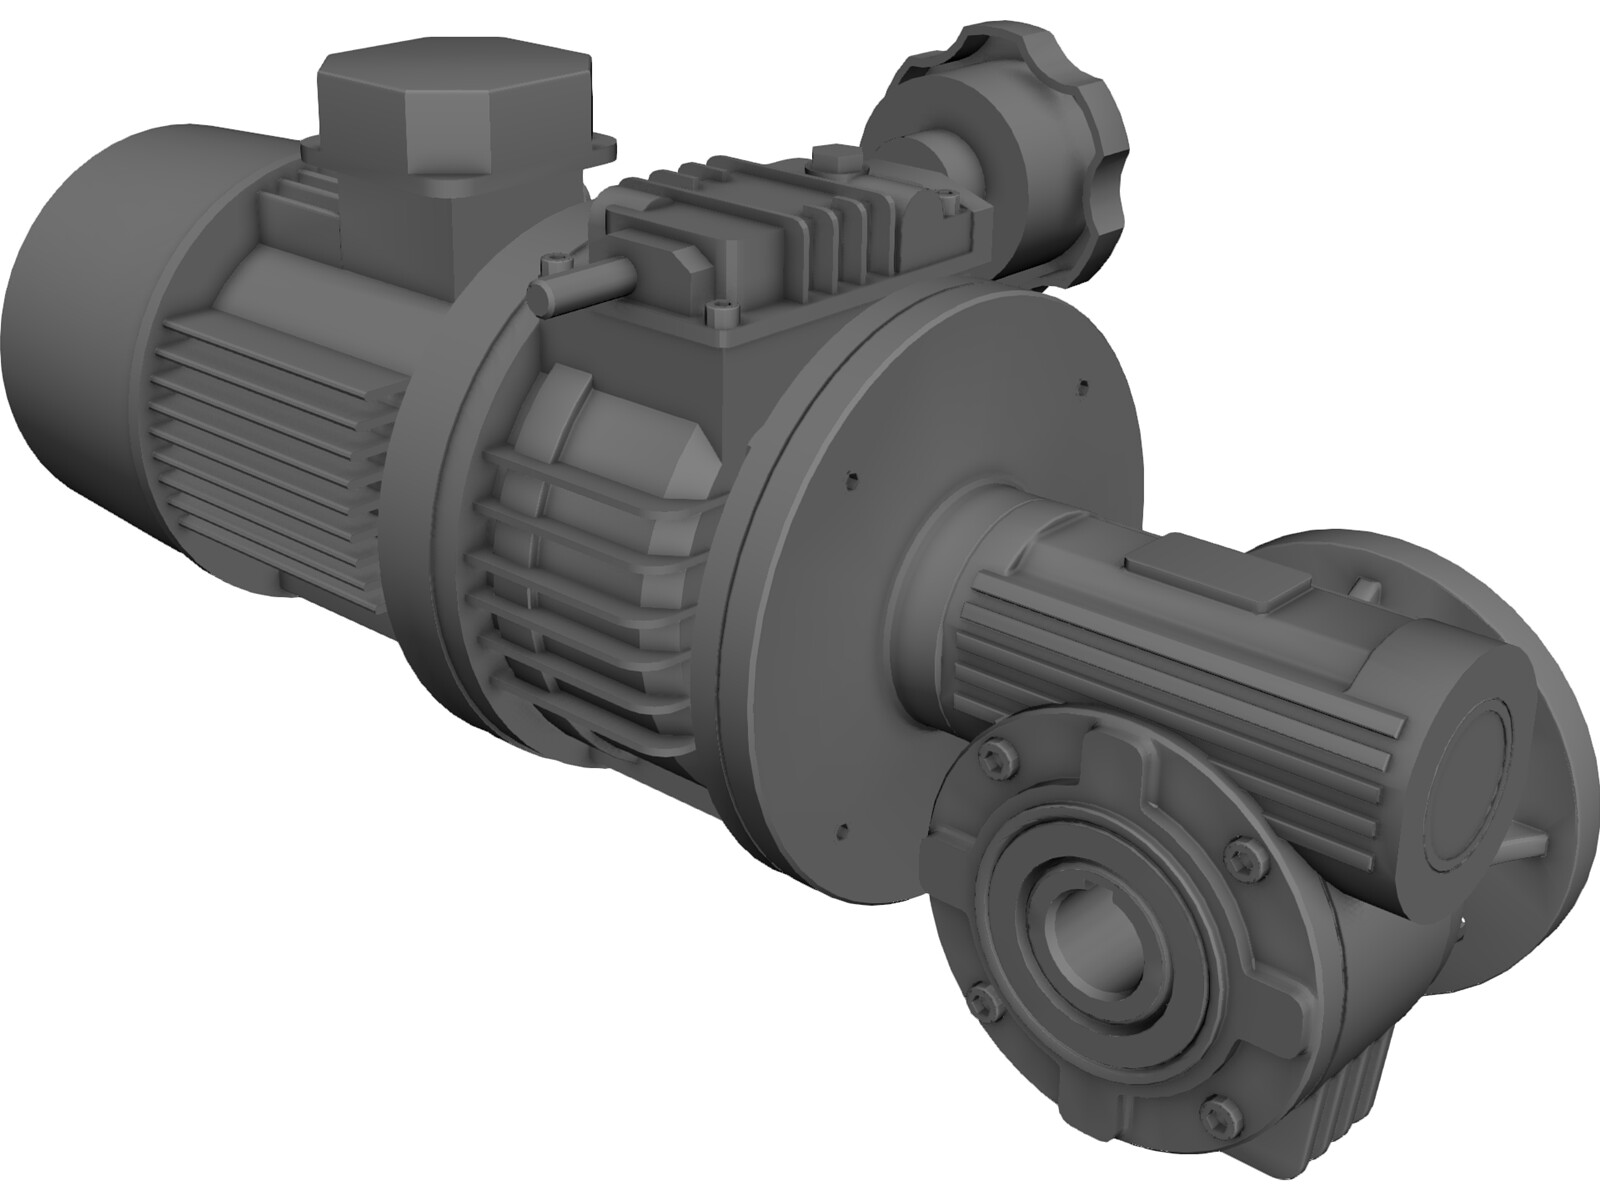 Motor reductor 3d cad model download 3d cad browser Cad models